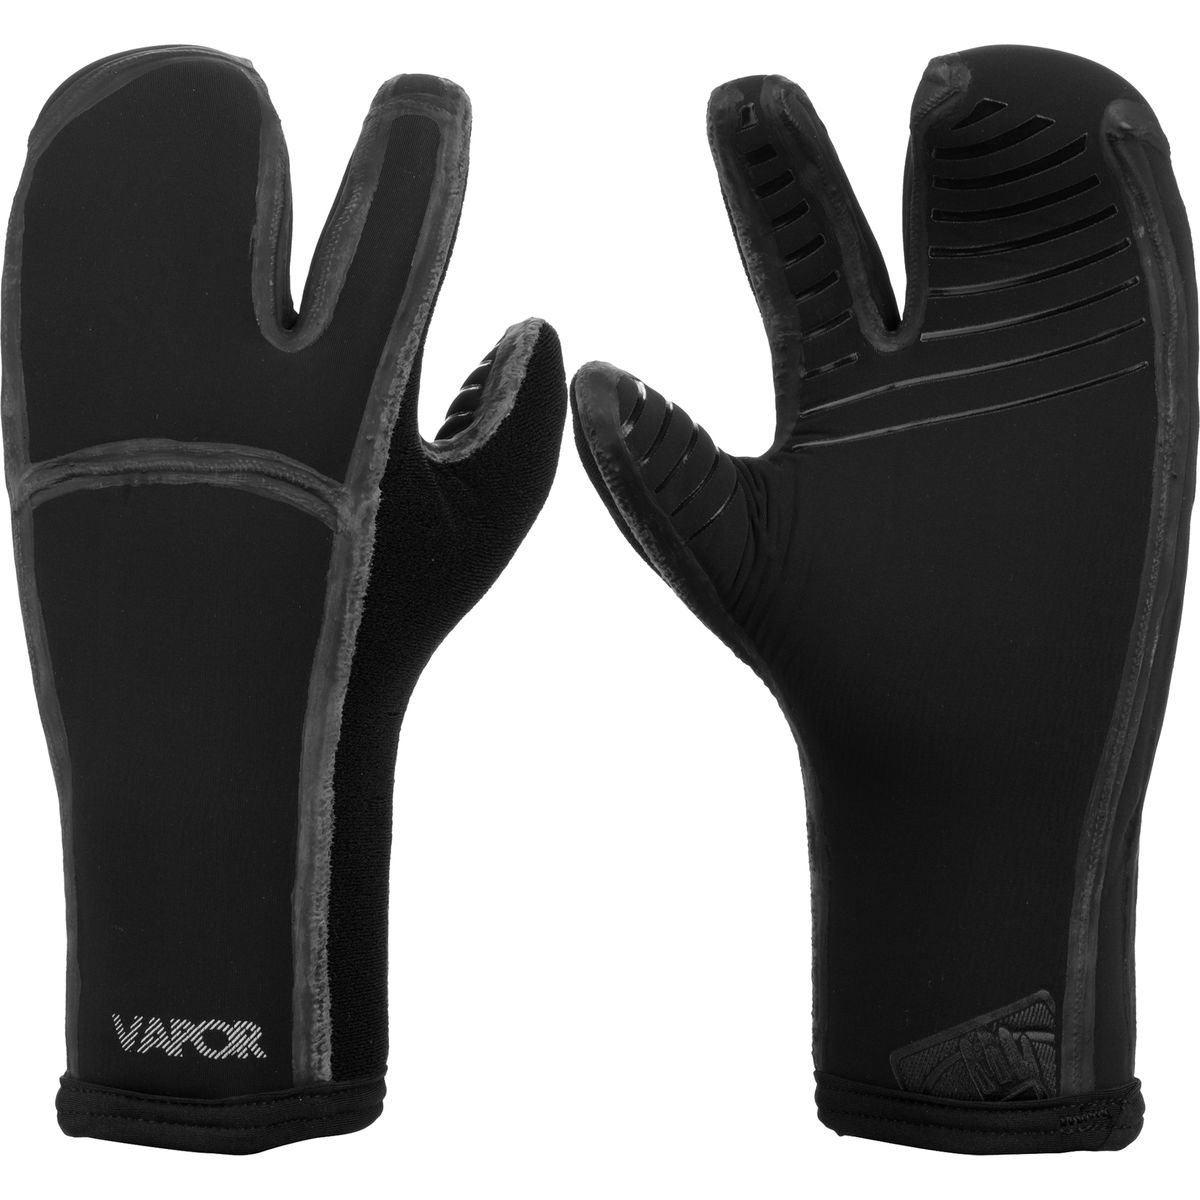 Body Glove 6/5mm Vapor Claw Glove